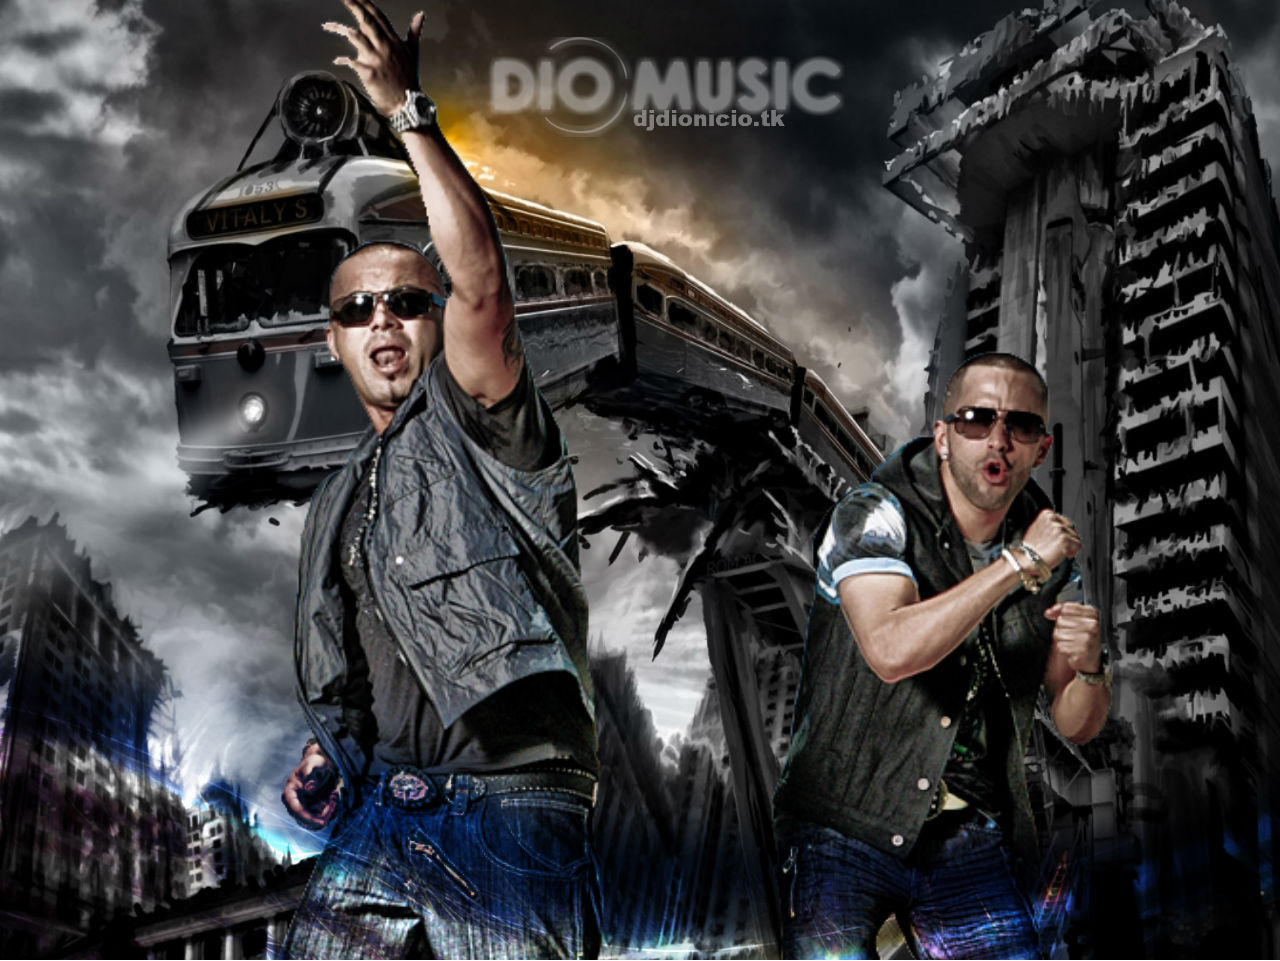 wallpaper hd wisin y yandel 3d 2012 fondos de pantallas